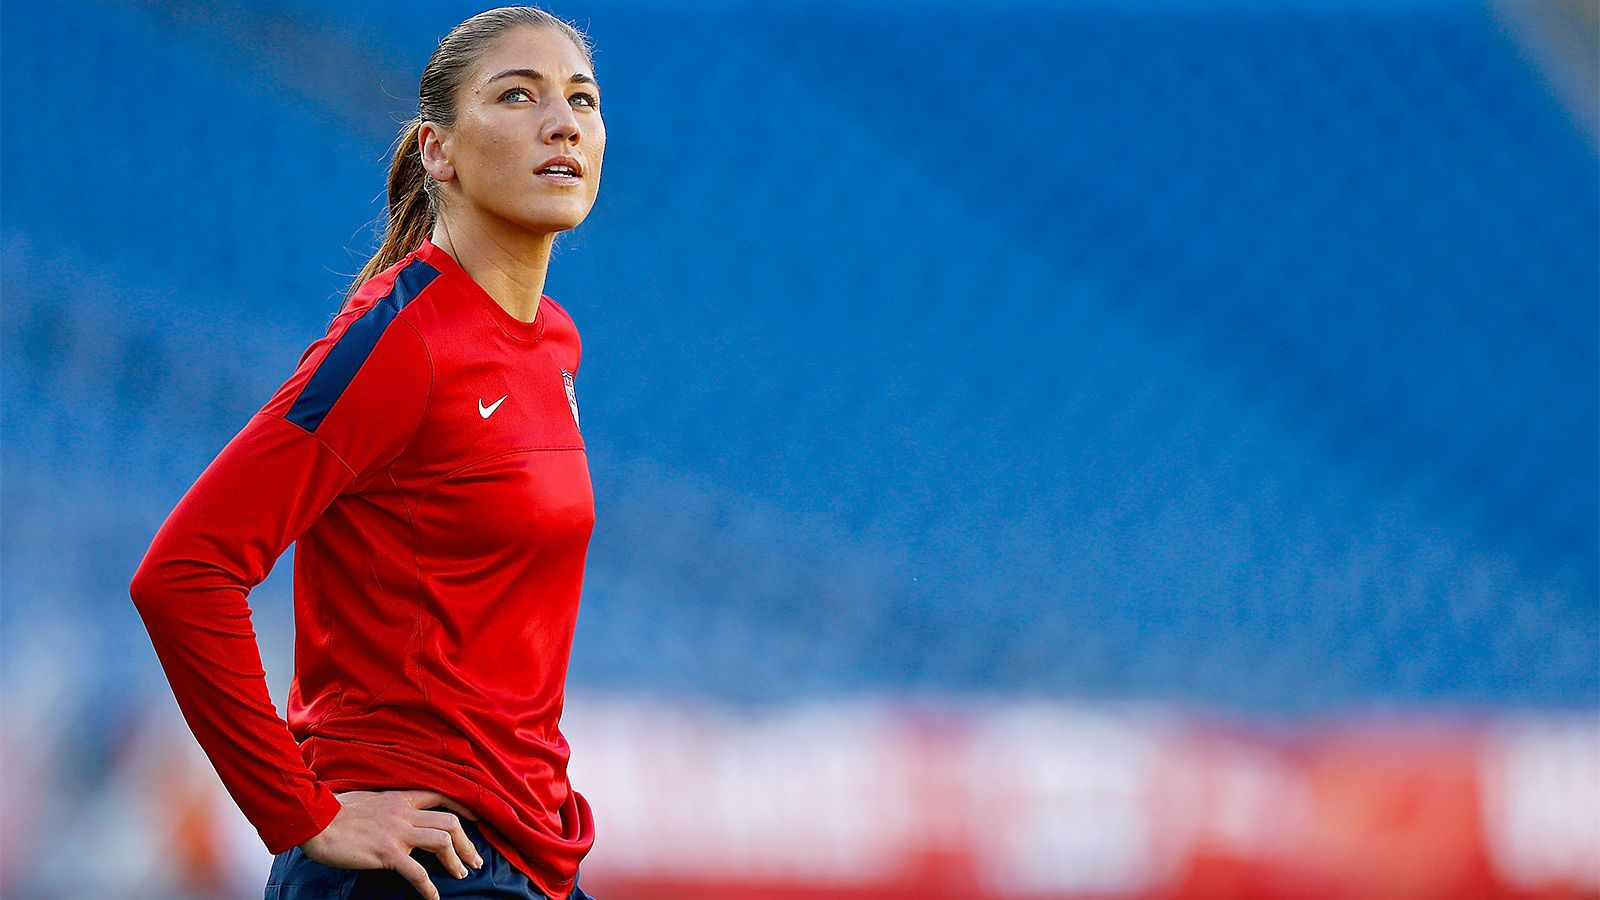 hope solo wallpaper : get free top quality hope solo wallpaper for